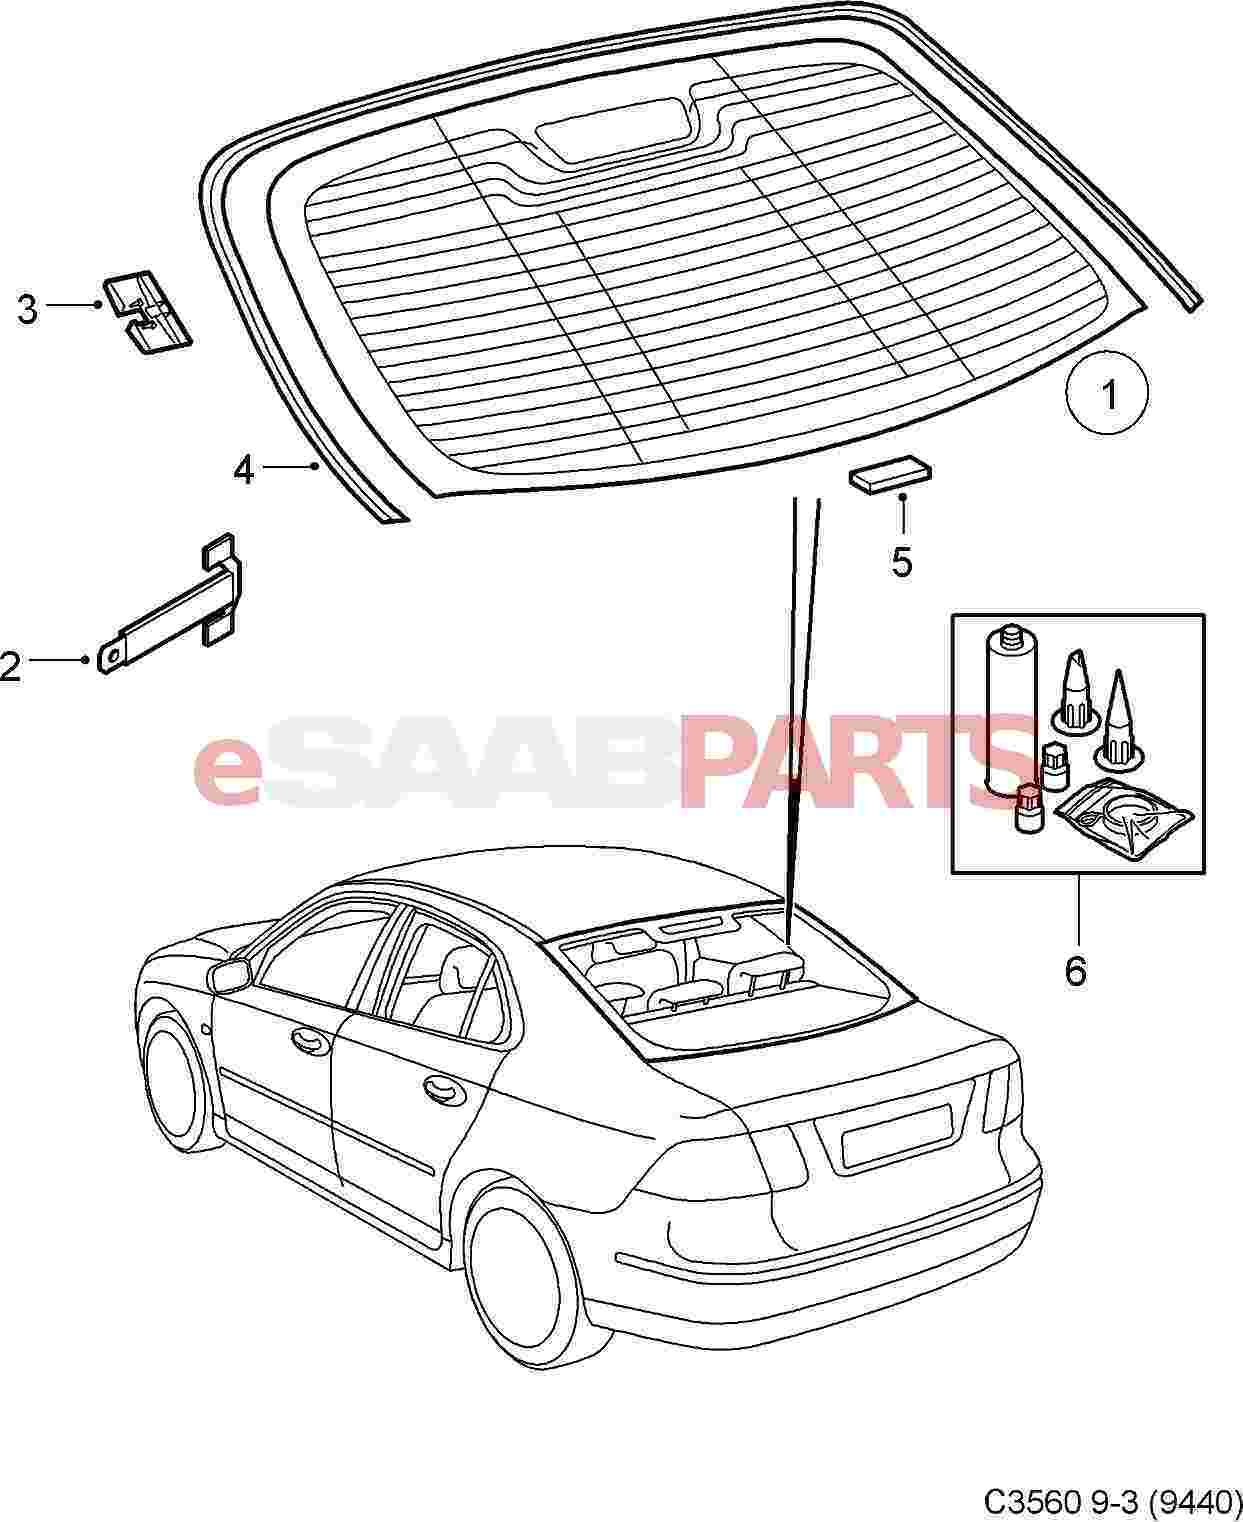 Saab Rear Window Decor Trim Strip